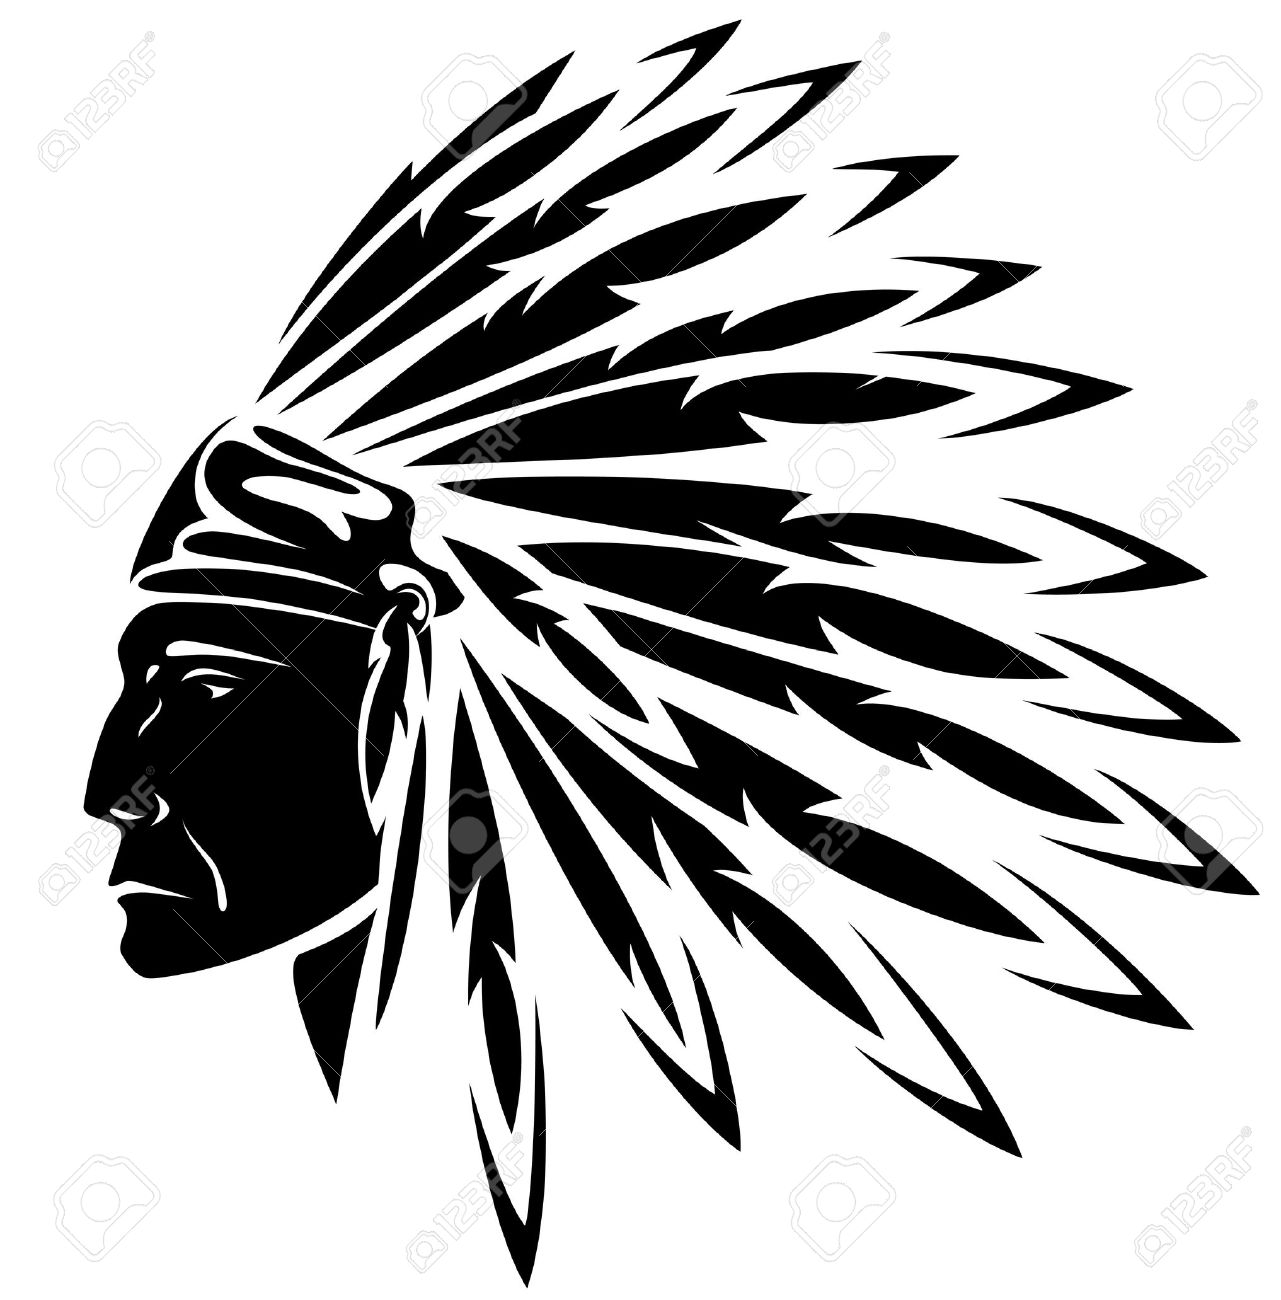 1281x1300 Red Indian Chief Black And White Illustration Royalty Free